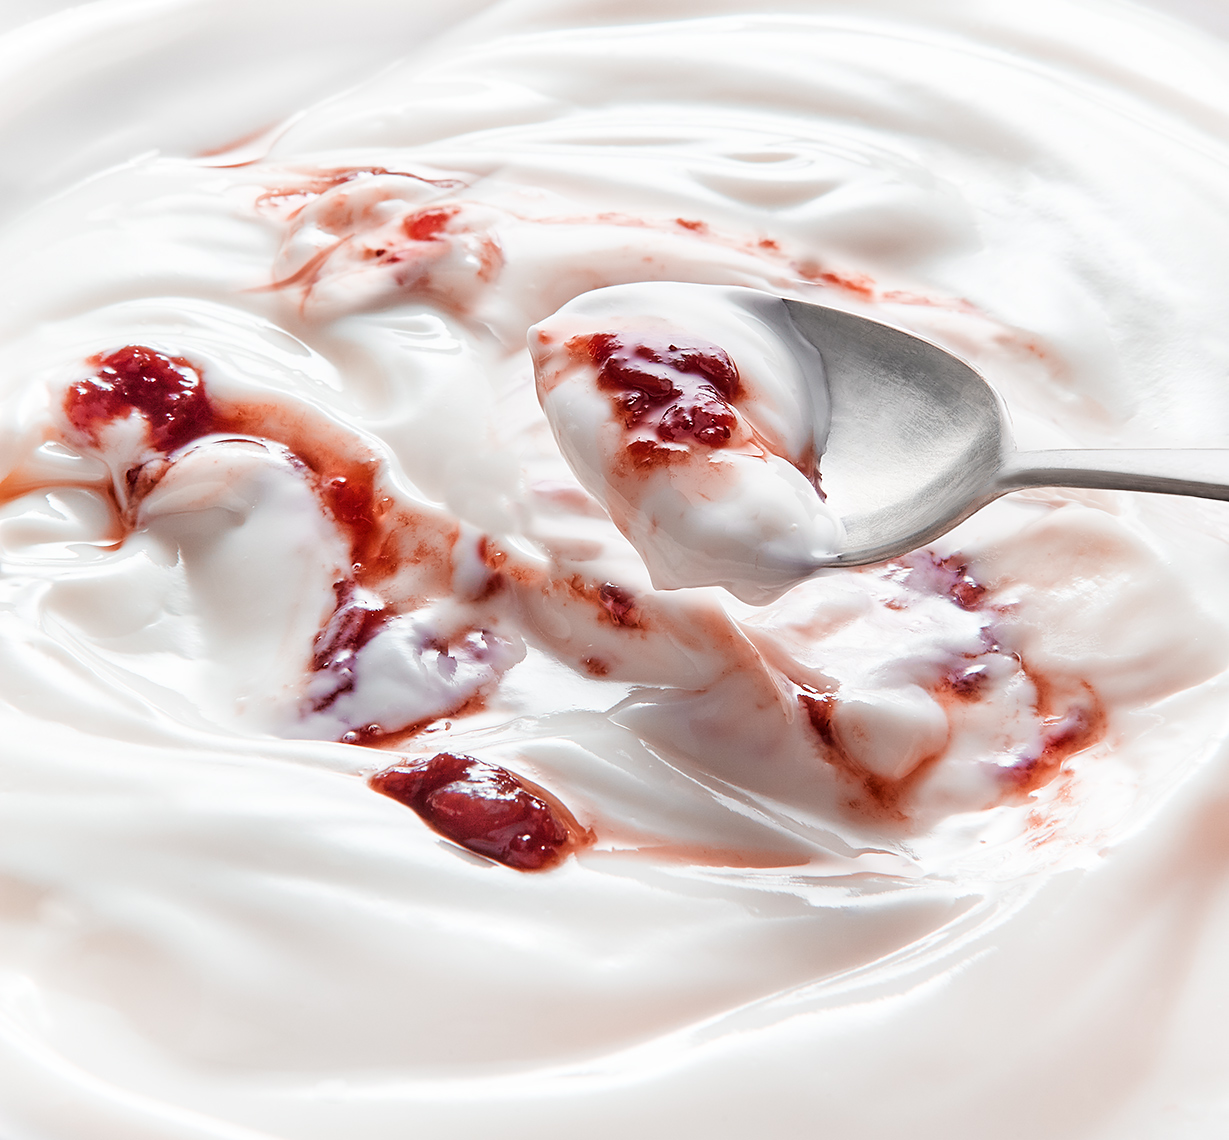 SueTest_Yoghurt_1_2019_0084_Spoon_Jam_FINAL